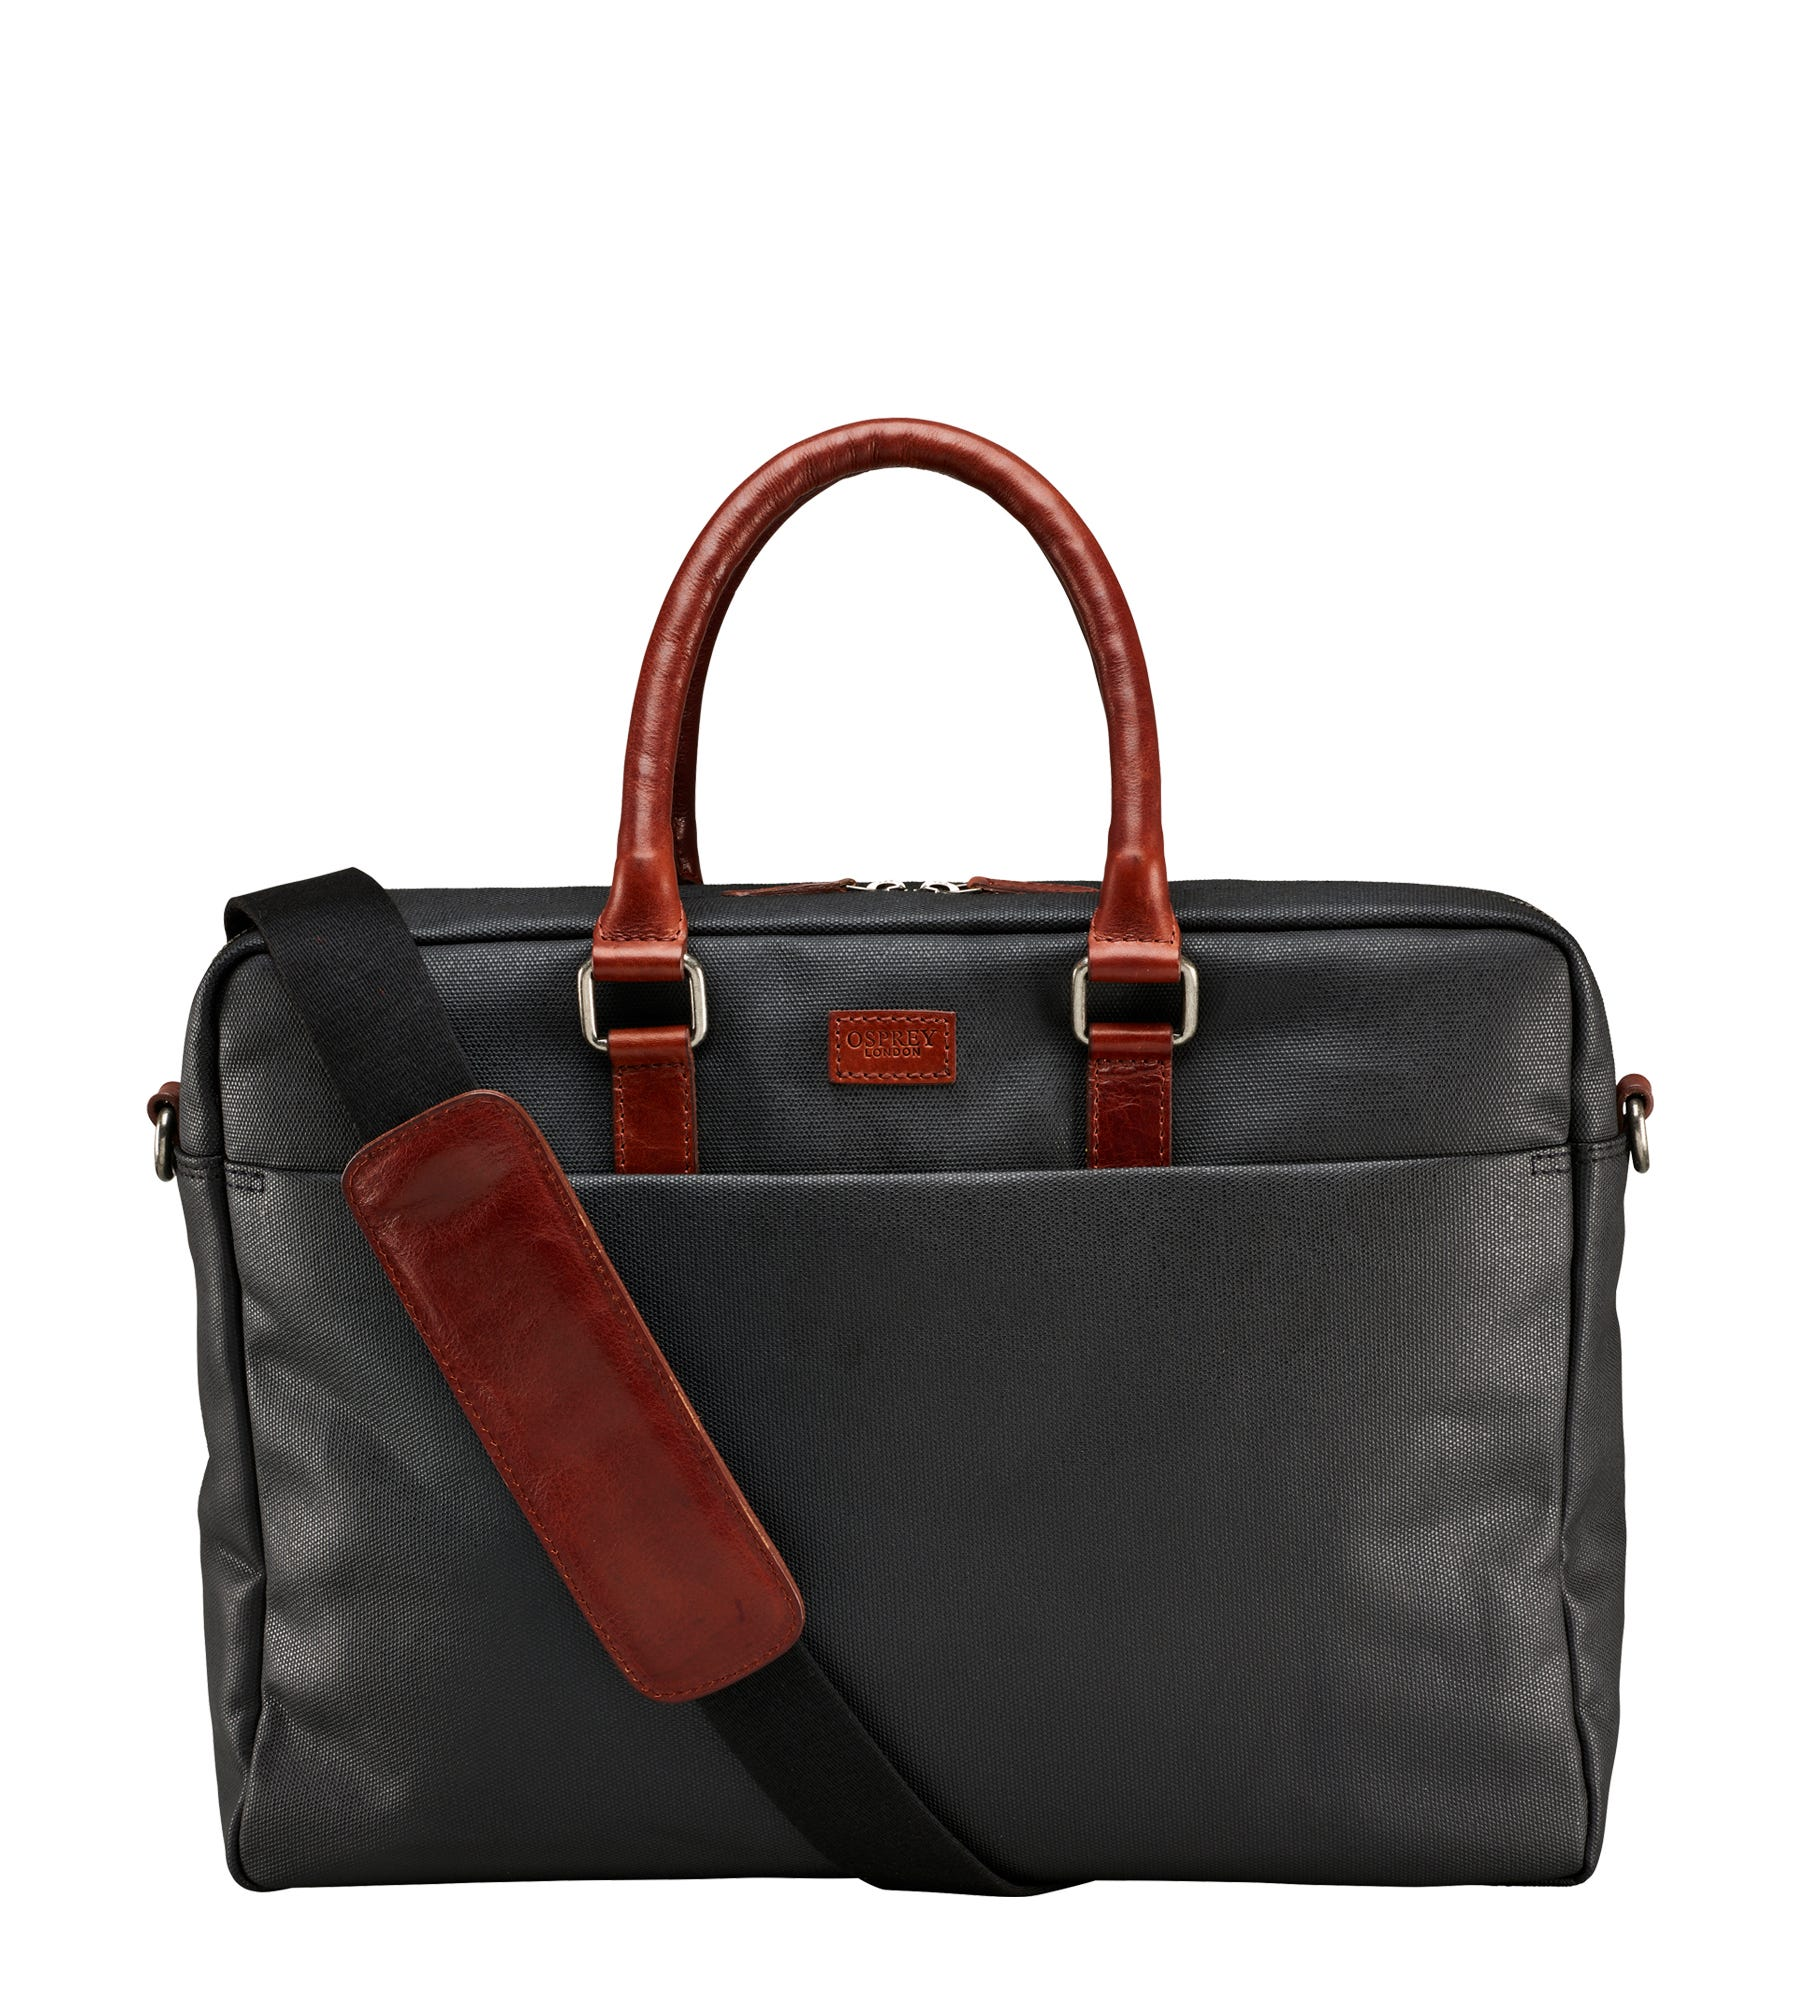 An image of The Grantham Waxed Canvas & Leather Laptop Bag